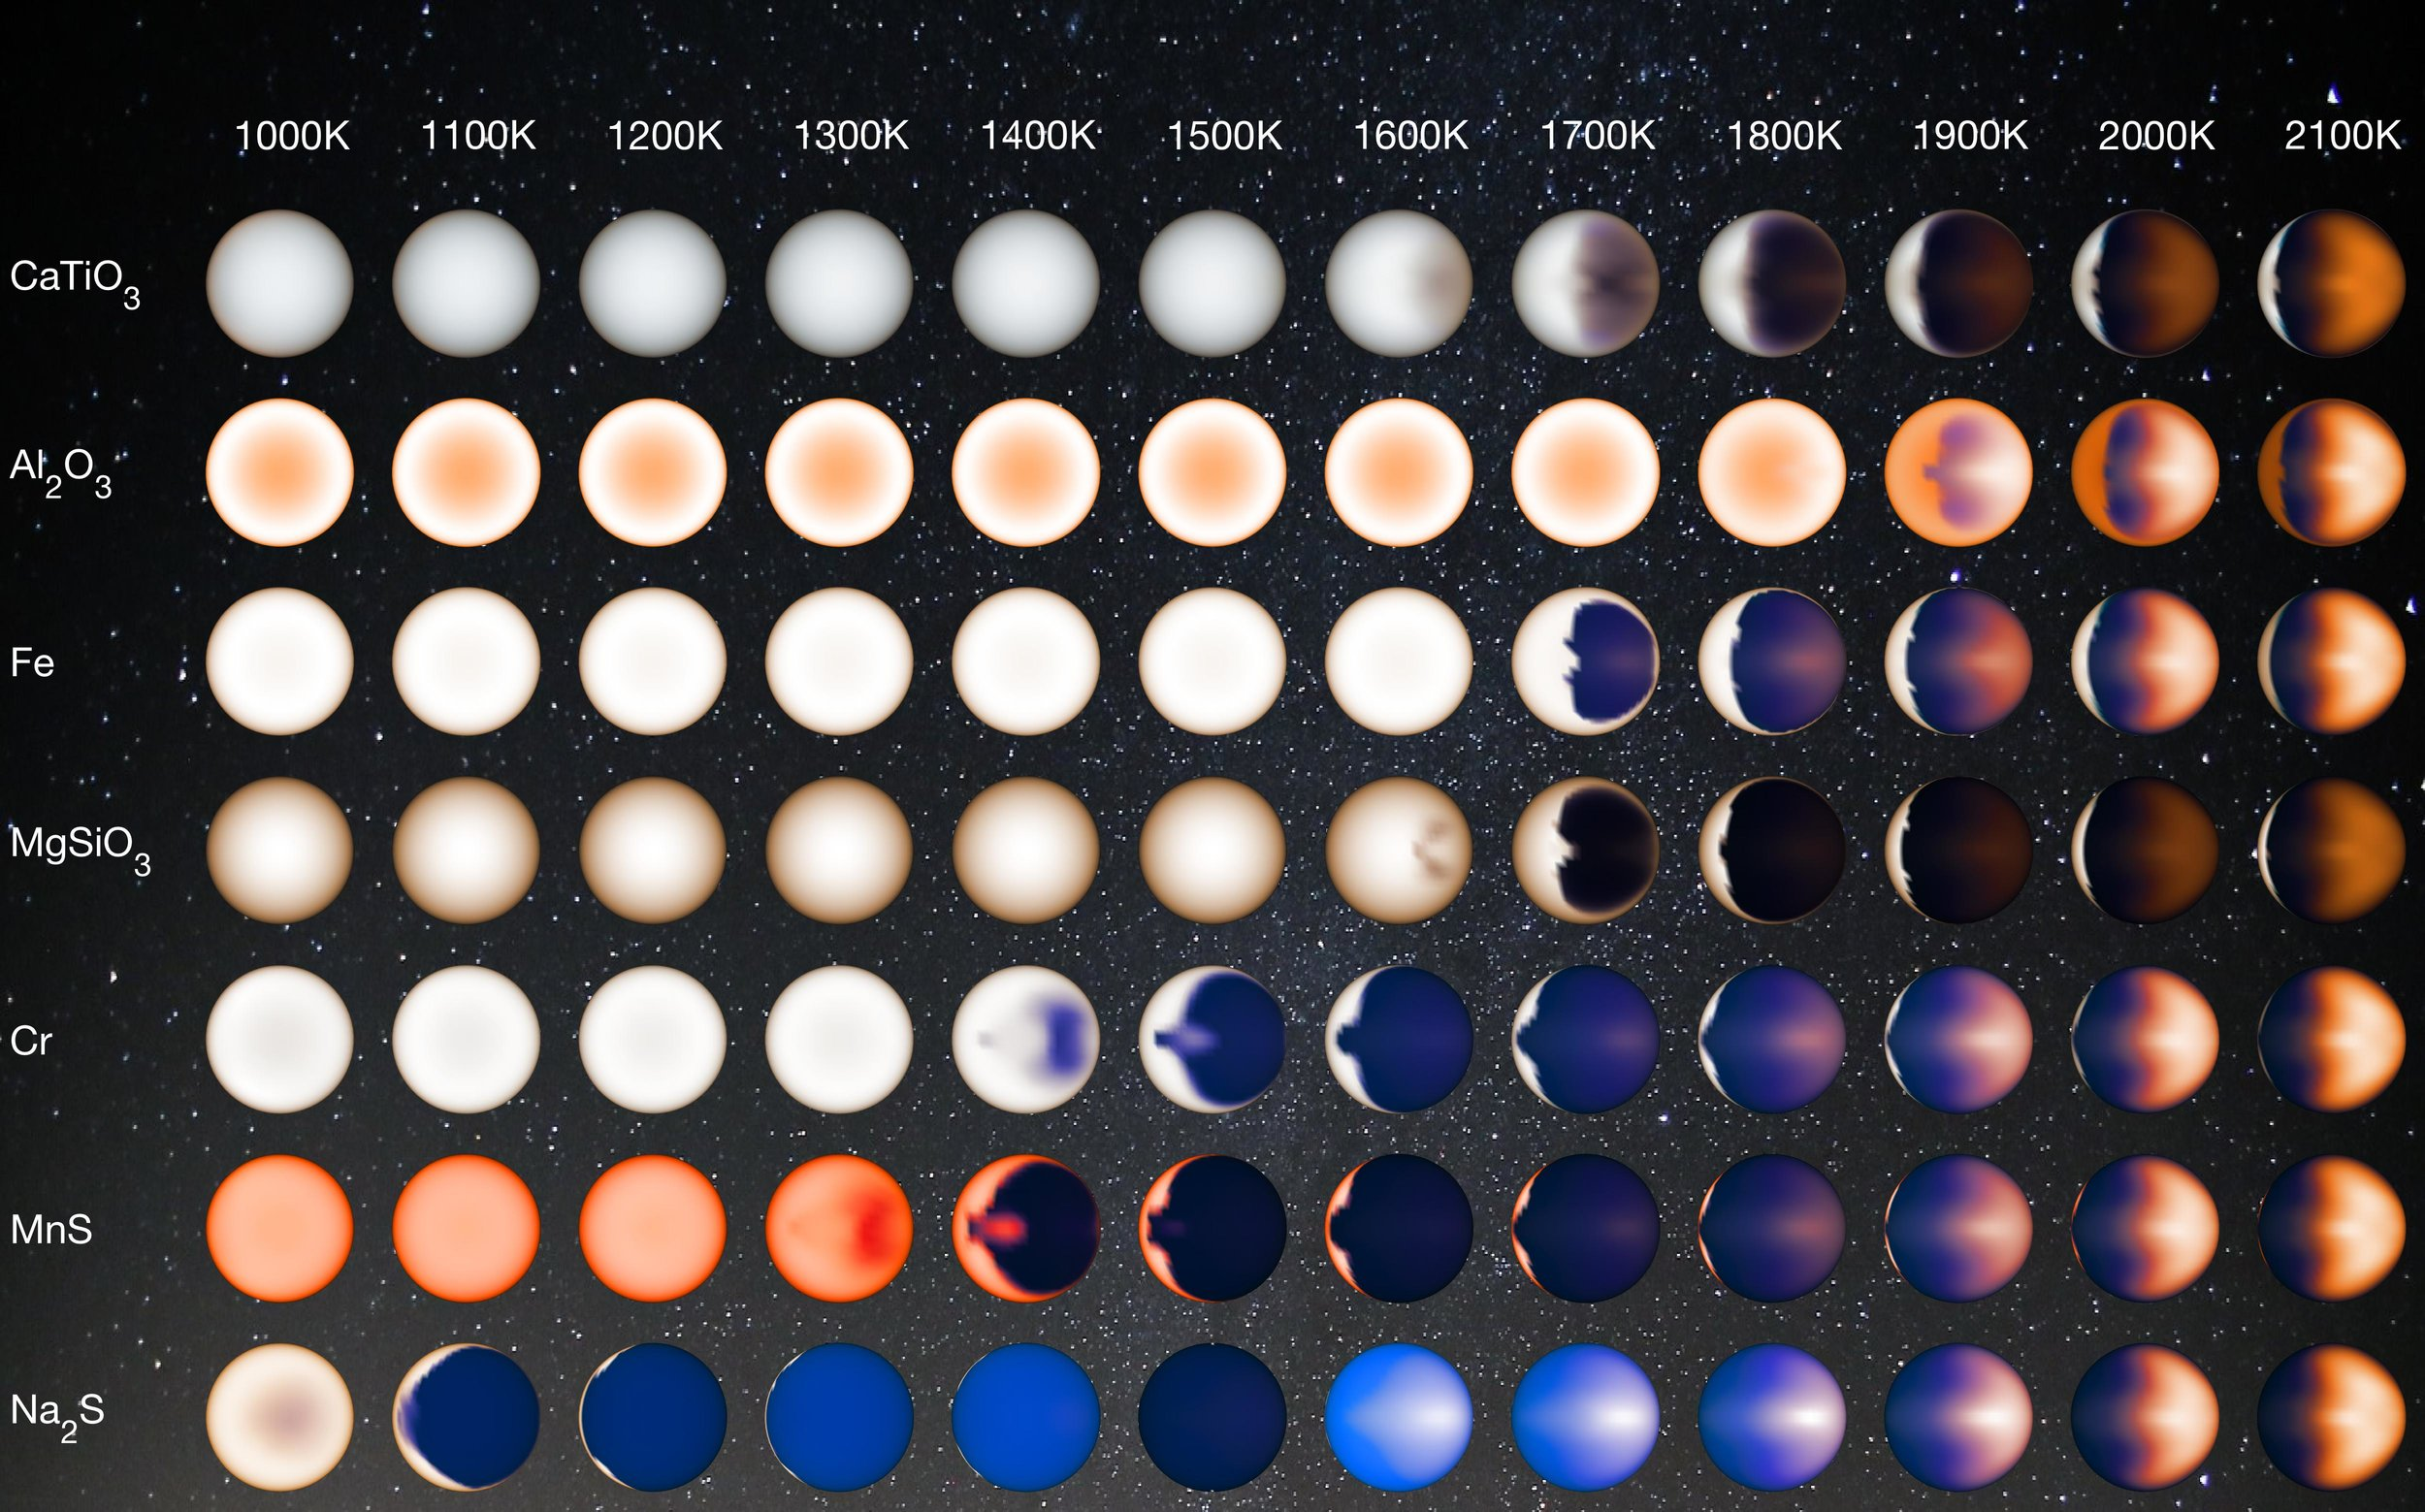 This illustration represents how hot Jupiters of different temperatures and different cloud compositions might appear to a person flying over the dayside of these planets on a spaceship, based on computer modeling. – Image Credits: NASA/JPL-Caltech/University of Arizona/V. Parmentier